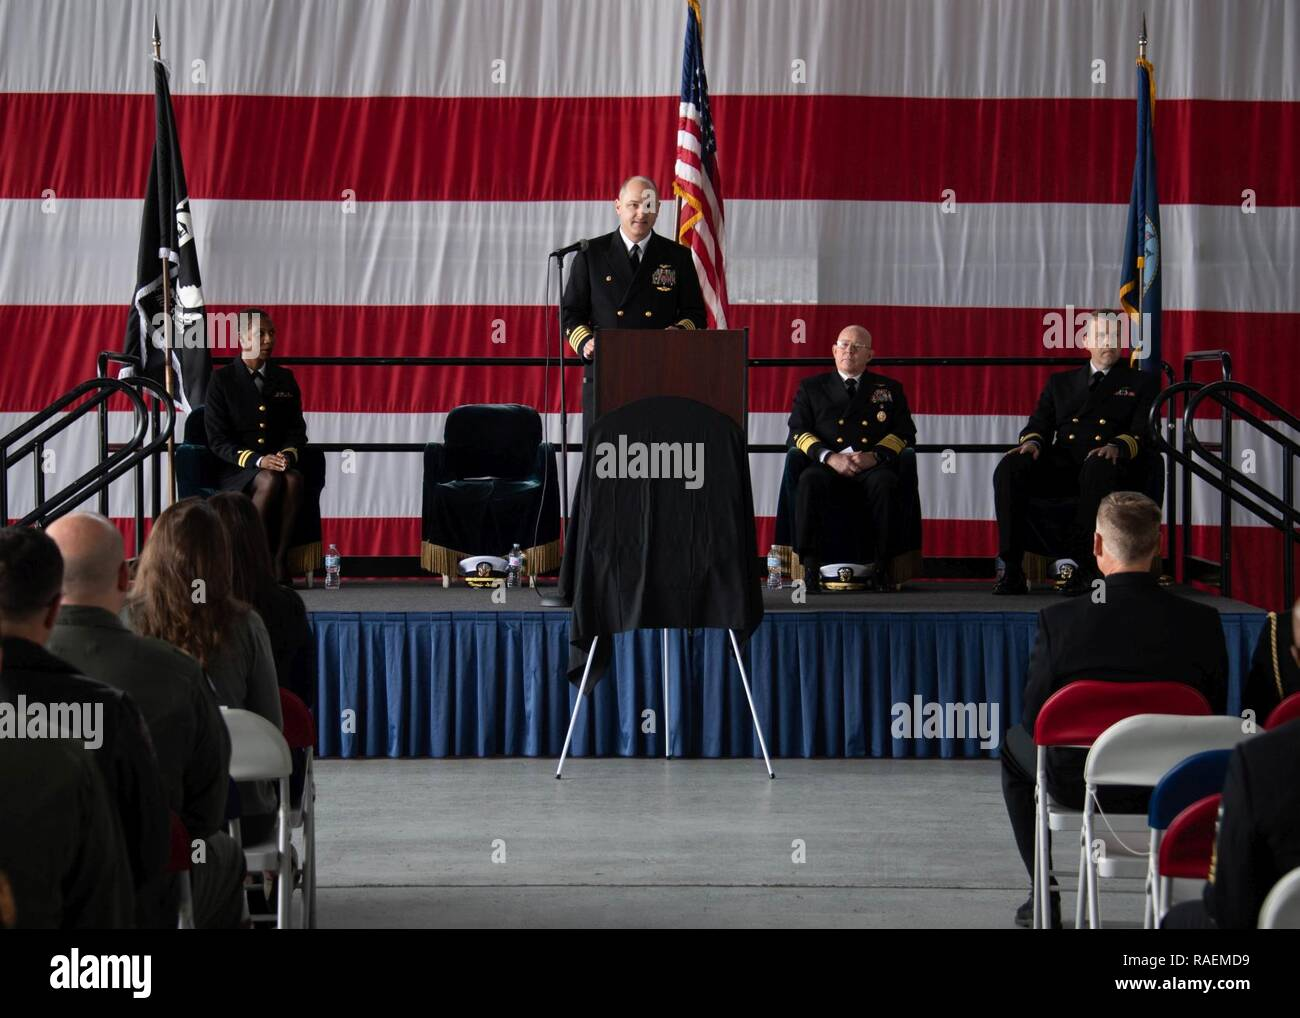 """CORONADO, Calif. (Dec. 14, 2018) Capt. Marcello D. Caceres, Commander, Airborne Command & Control and Logistics Wing, speaks at the establishment ceremony of Fleet Logistics Multi-Mission Squadron 30 """"Titans"""" (VRM-30). VRM-30 is the Navy's first CMV-22B Opsrey squadron and was established to begin the Navy's transition from the C-2A Greyhound. U.S. Navy - Stock Image"""